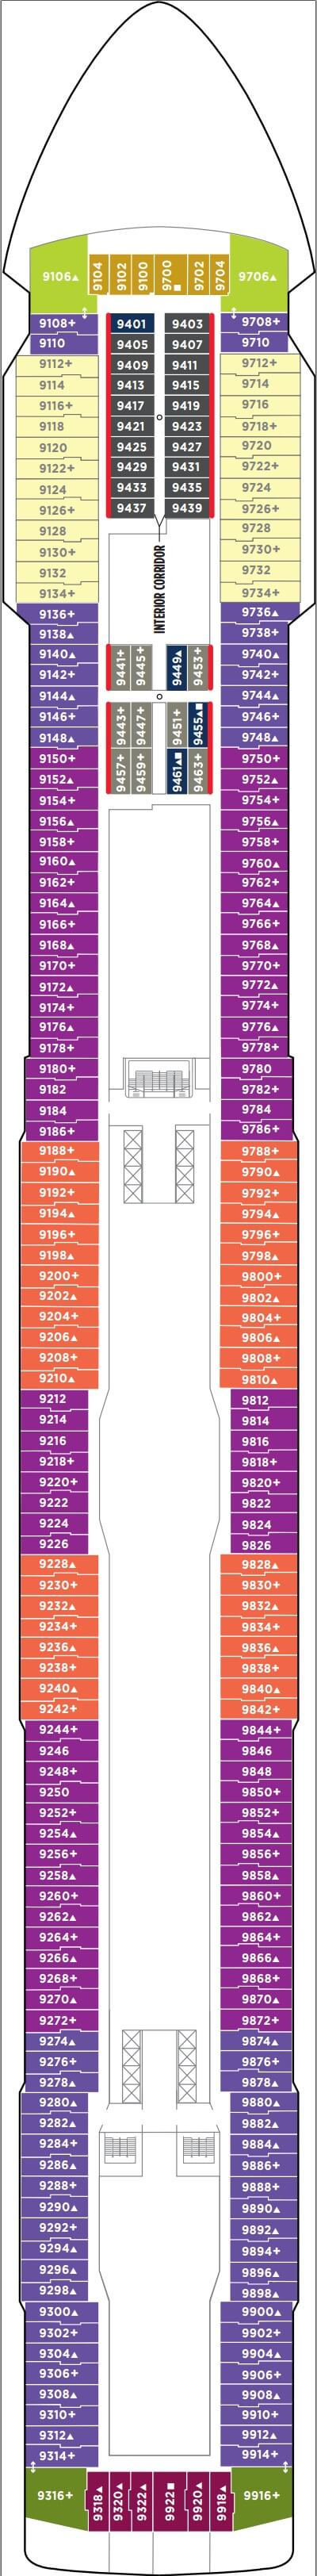 Norwegian Breakaway Deck 9 layout